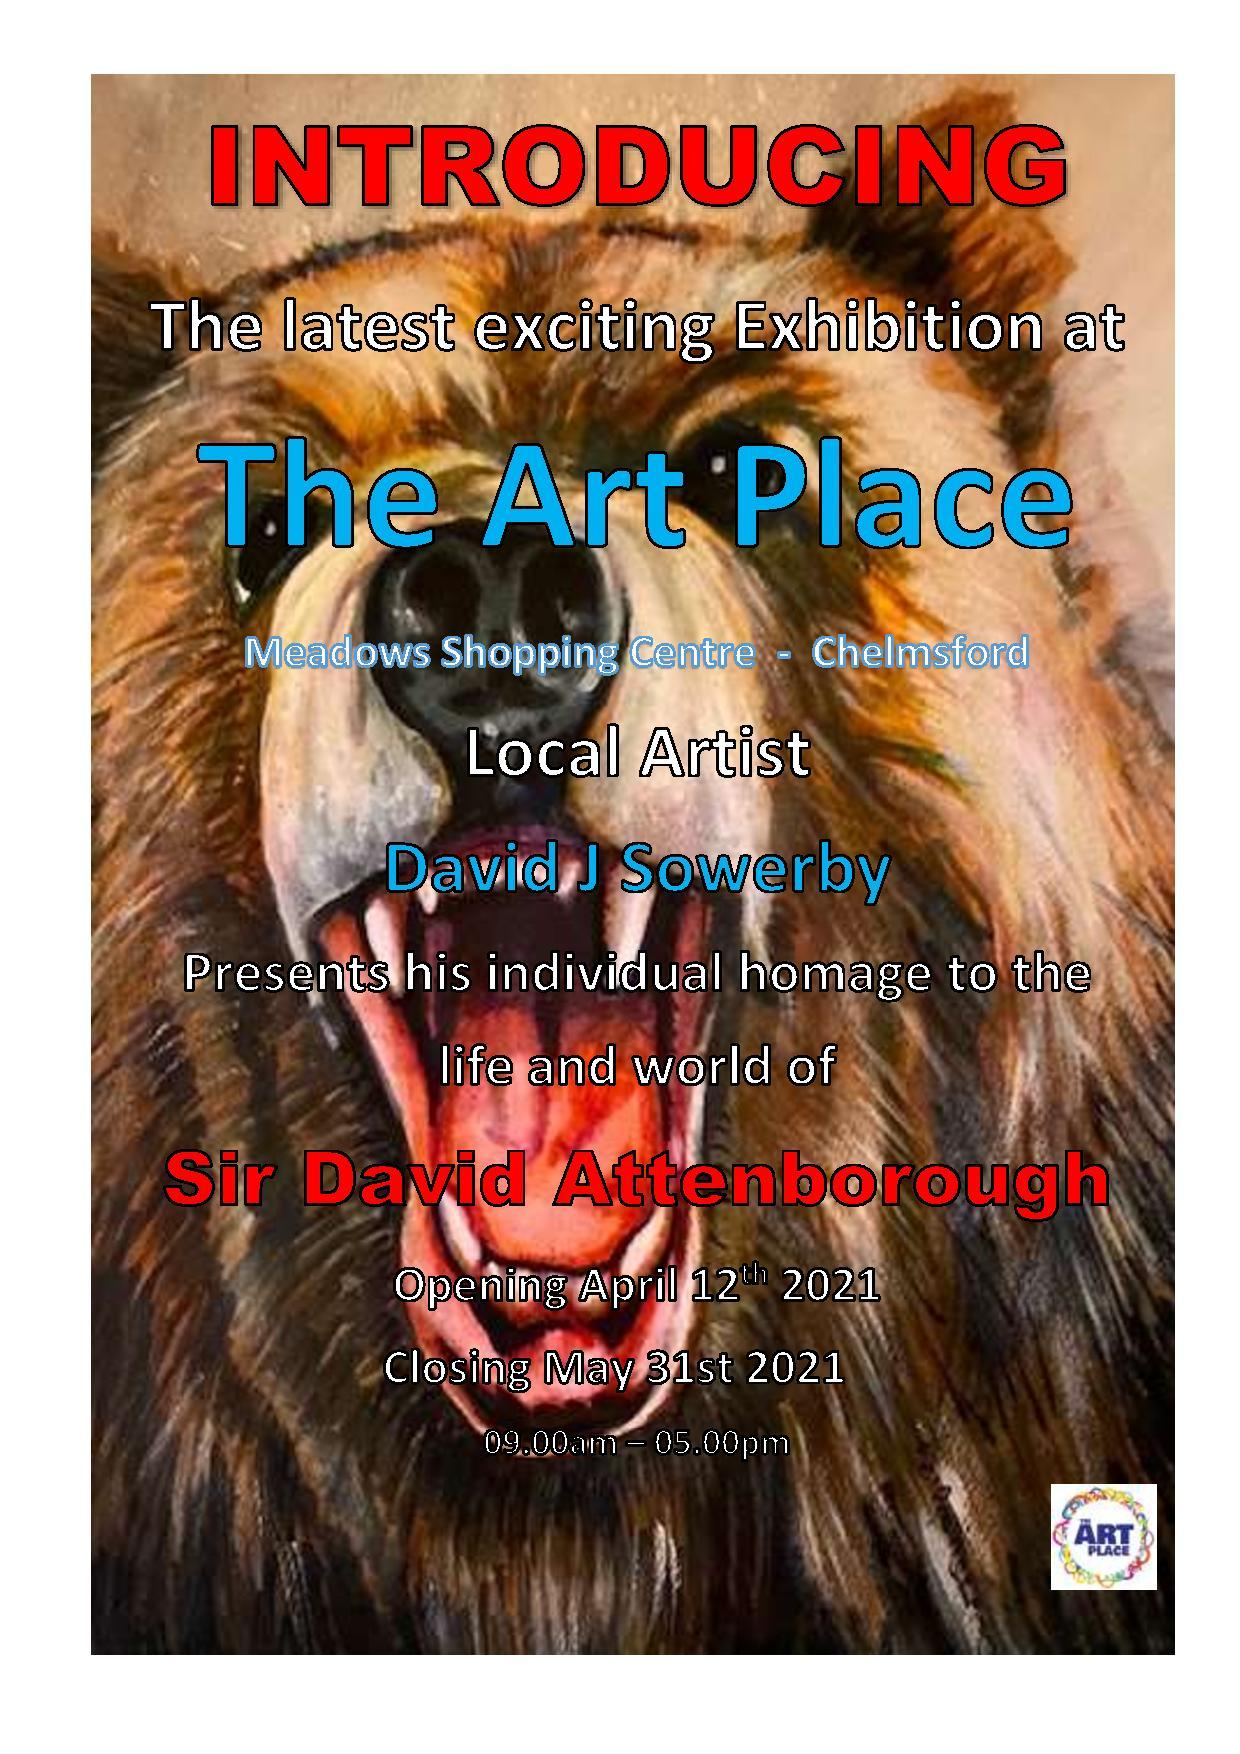 A new event at The Art Place